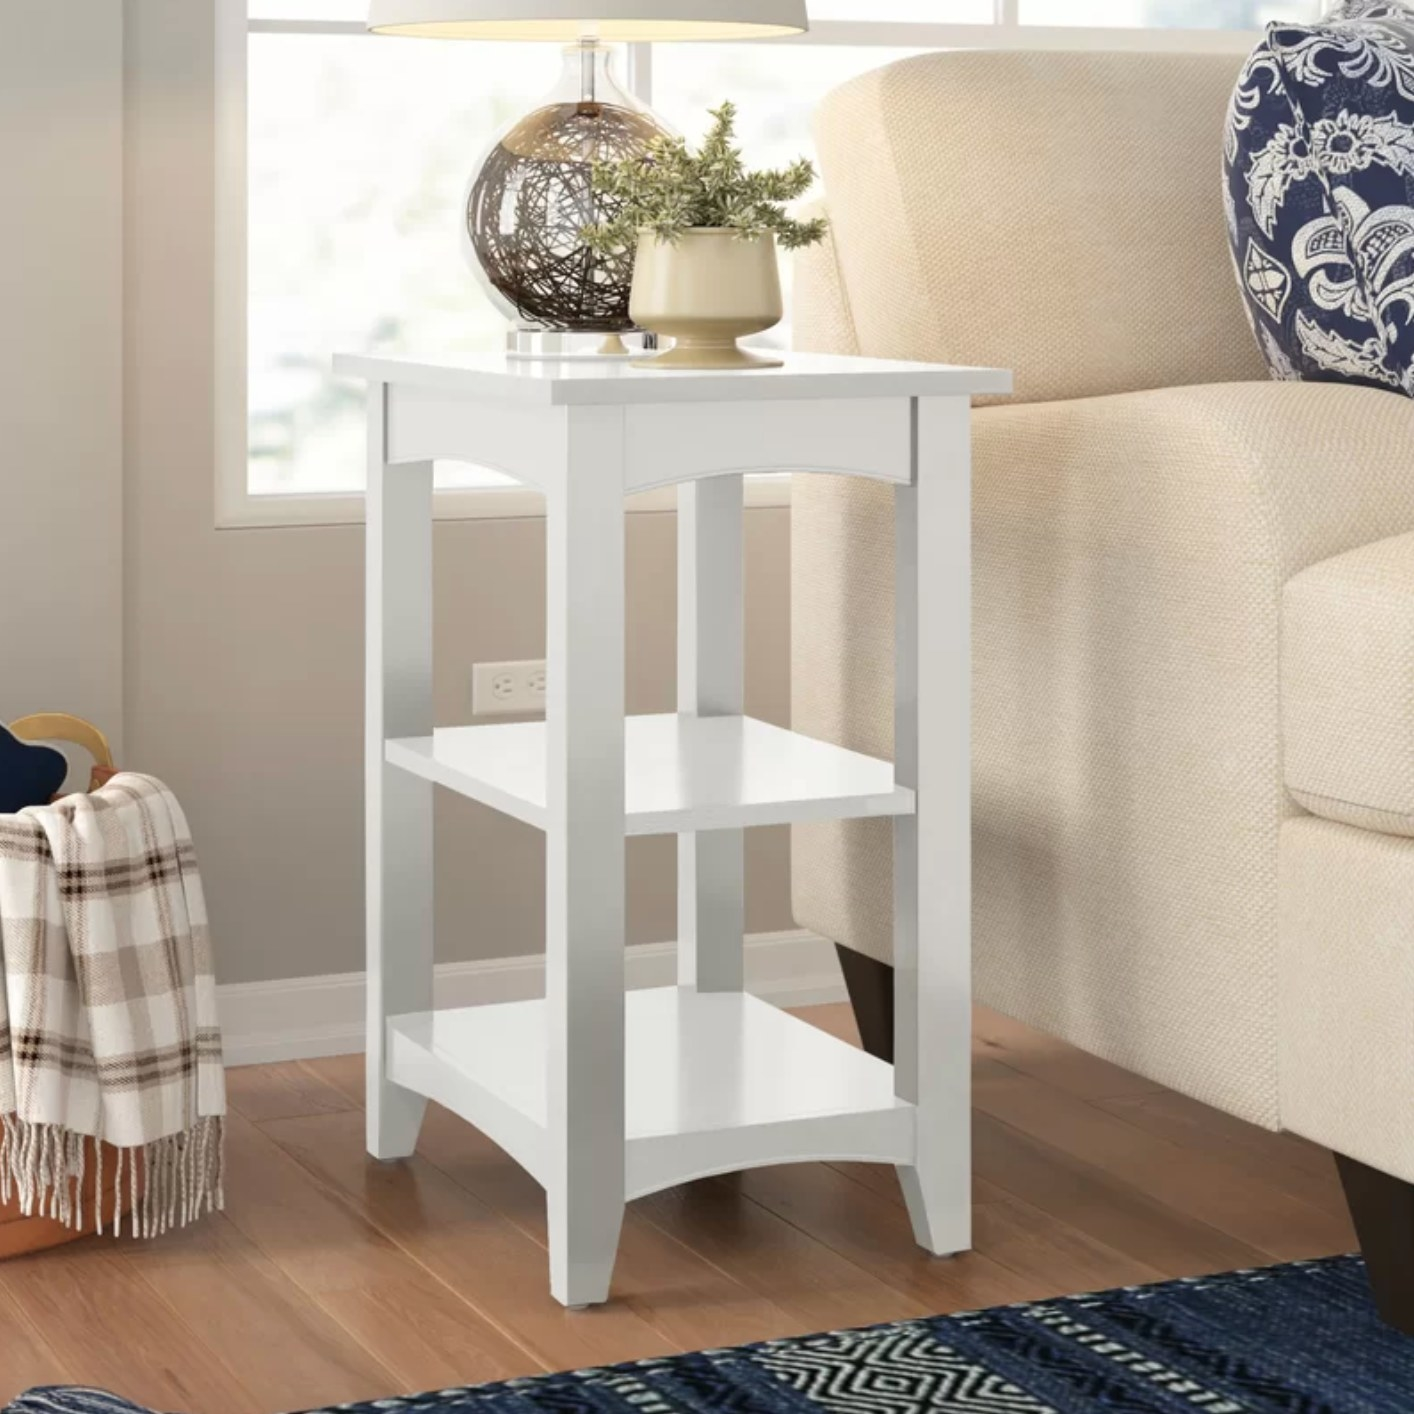 The end table with storage in white